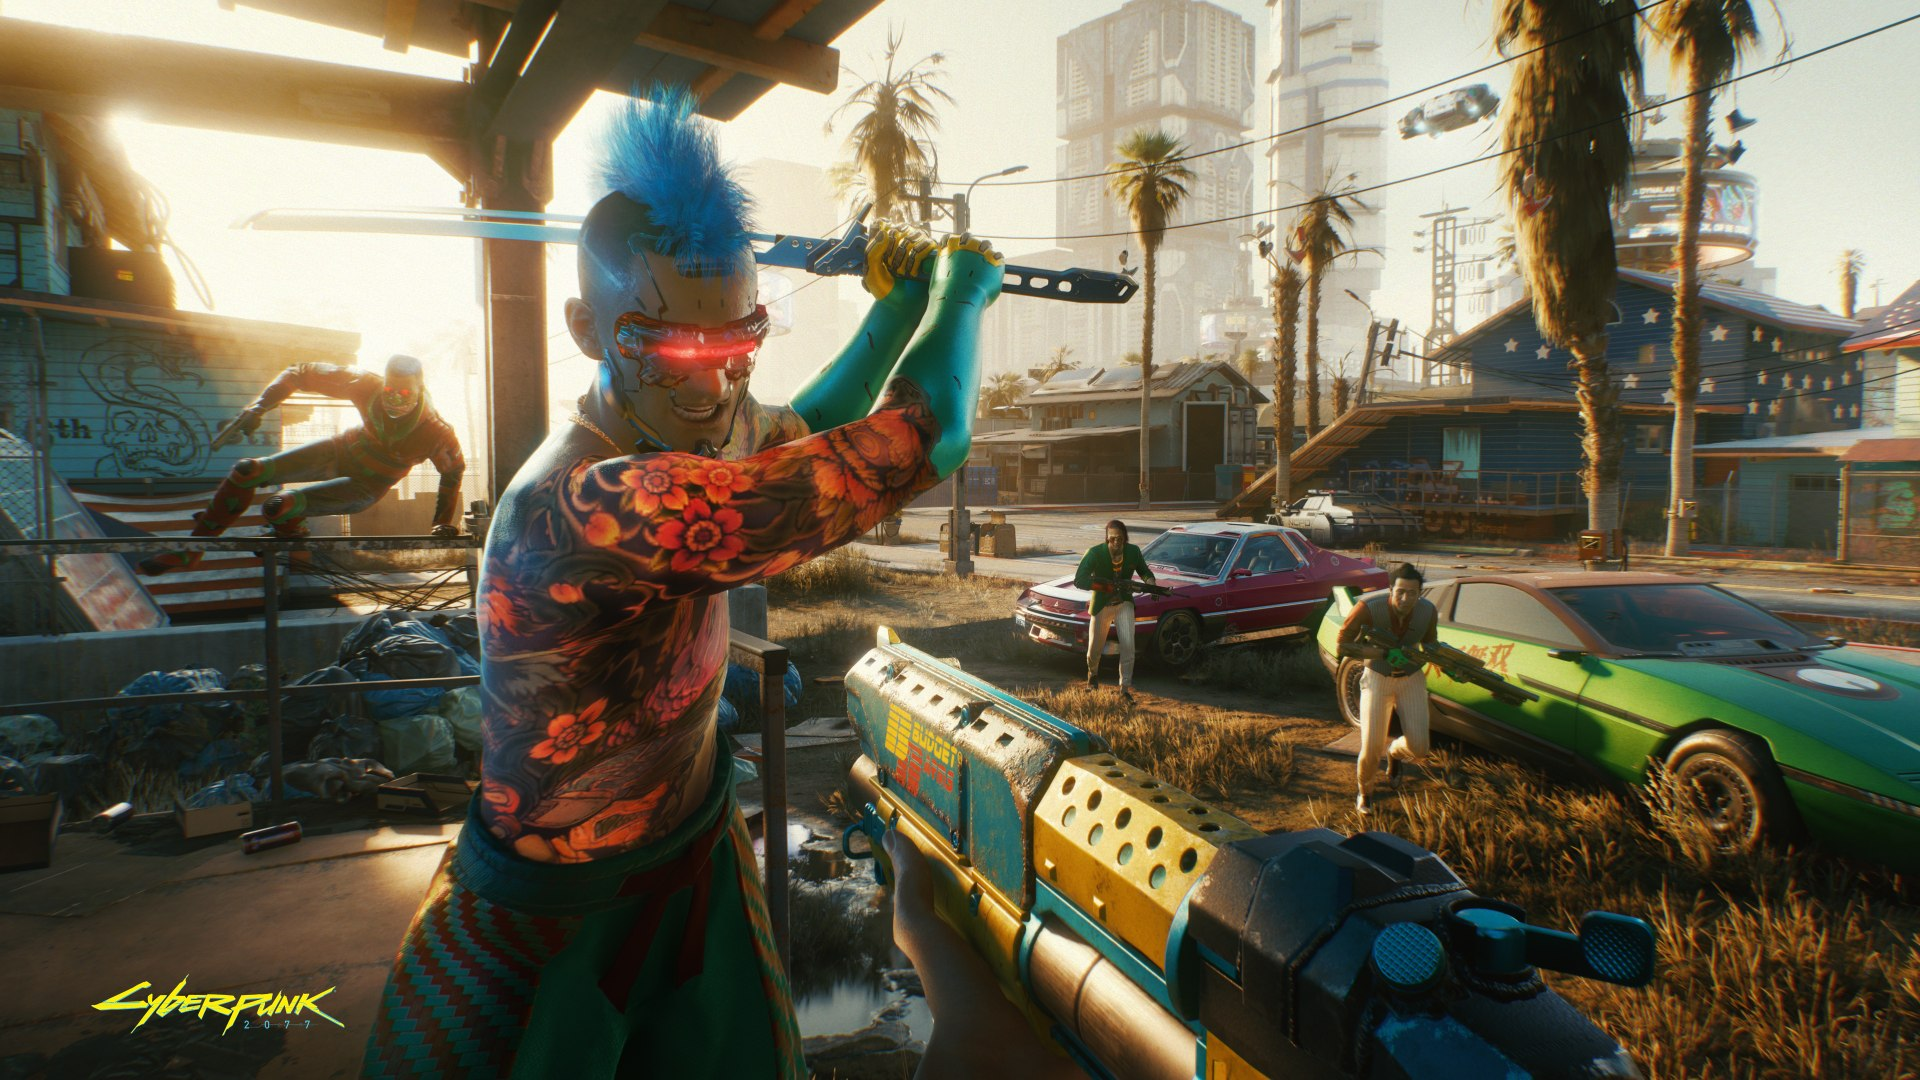 Cyberpunk 2077 S Dlc Will Now Be Revealed After Launch Shacknews